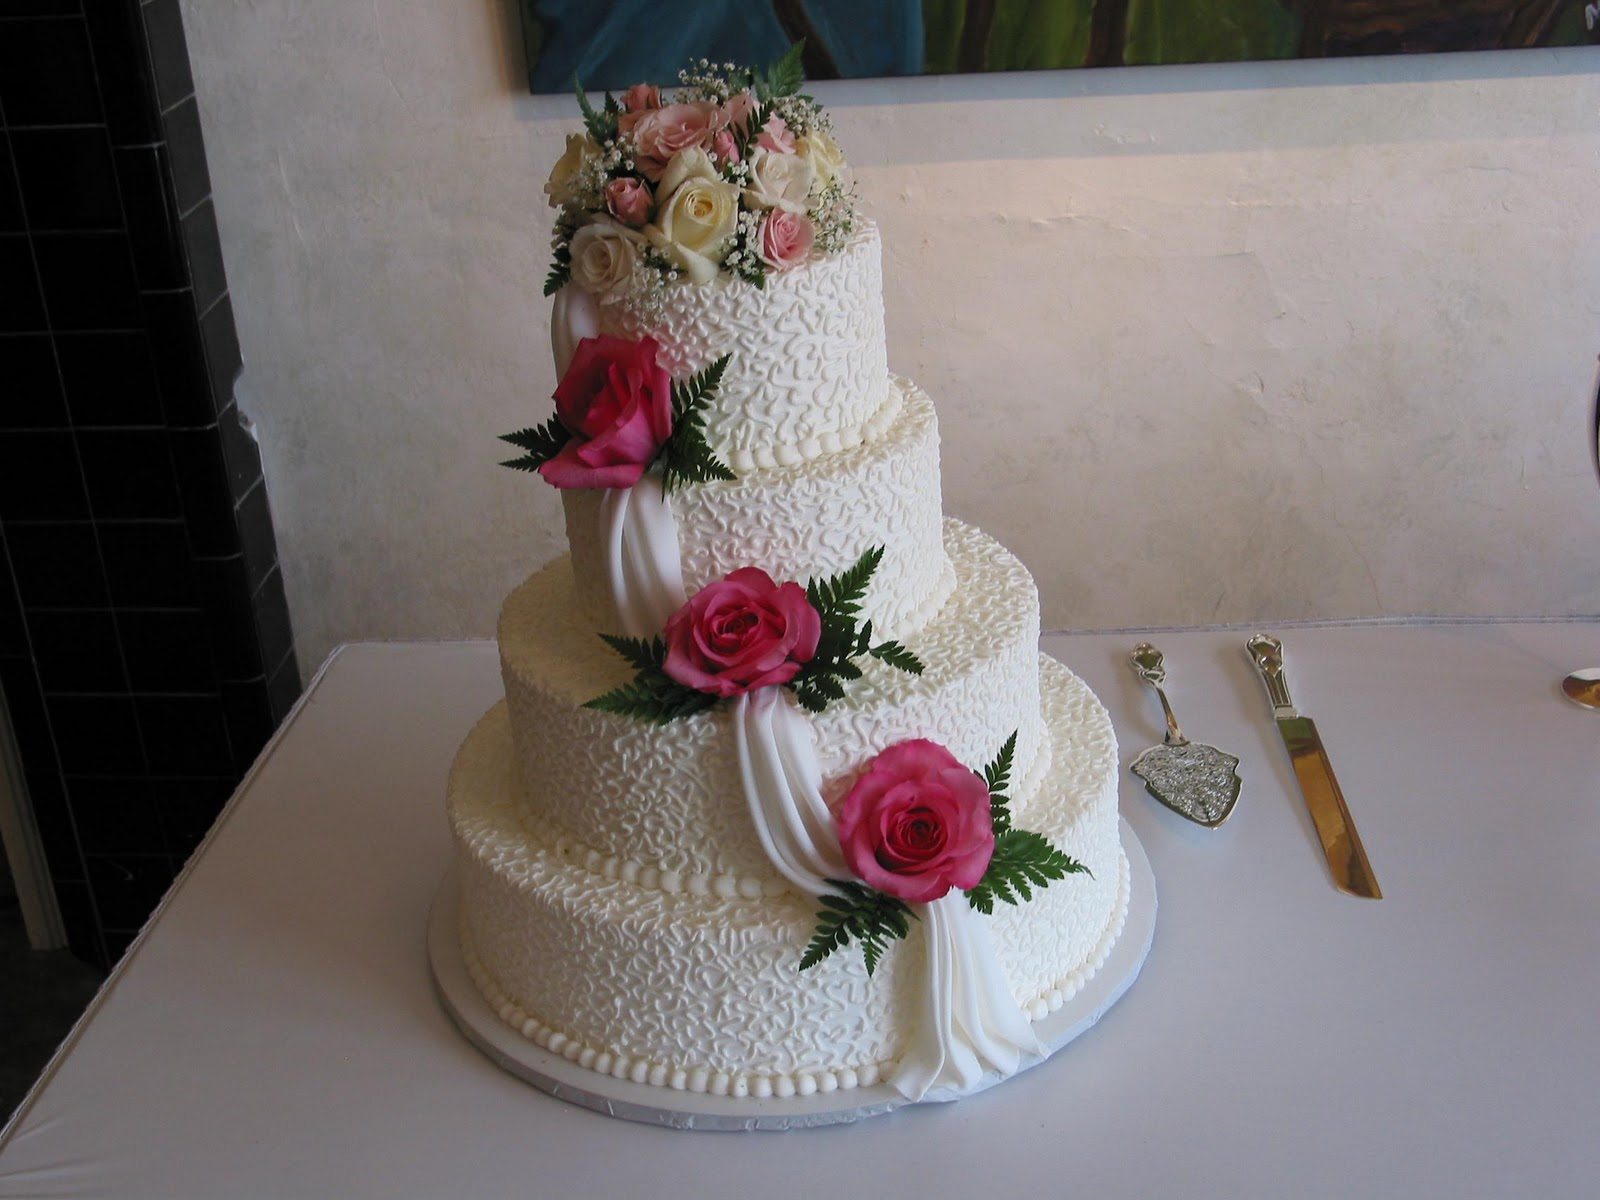 I picked out my wedding cake